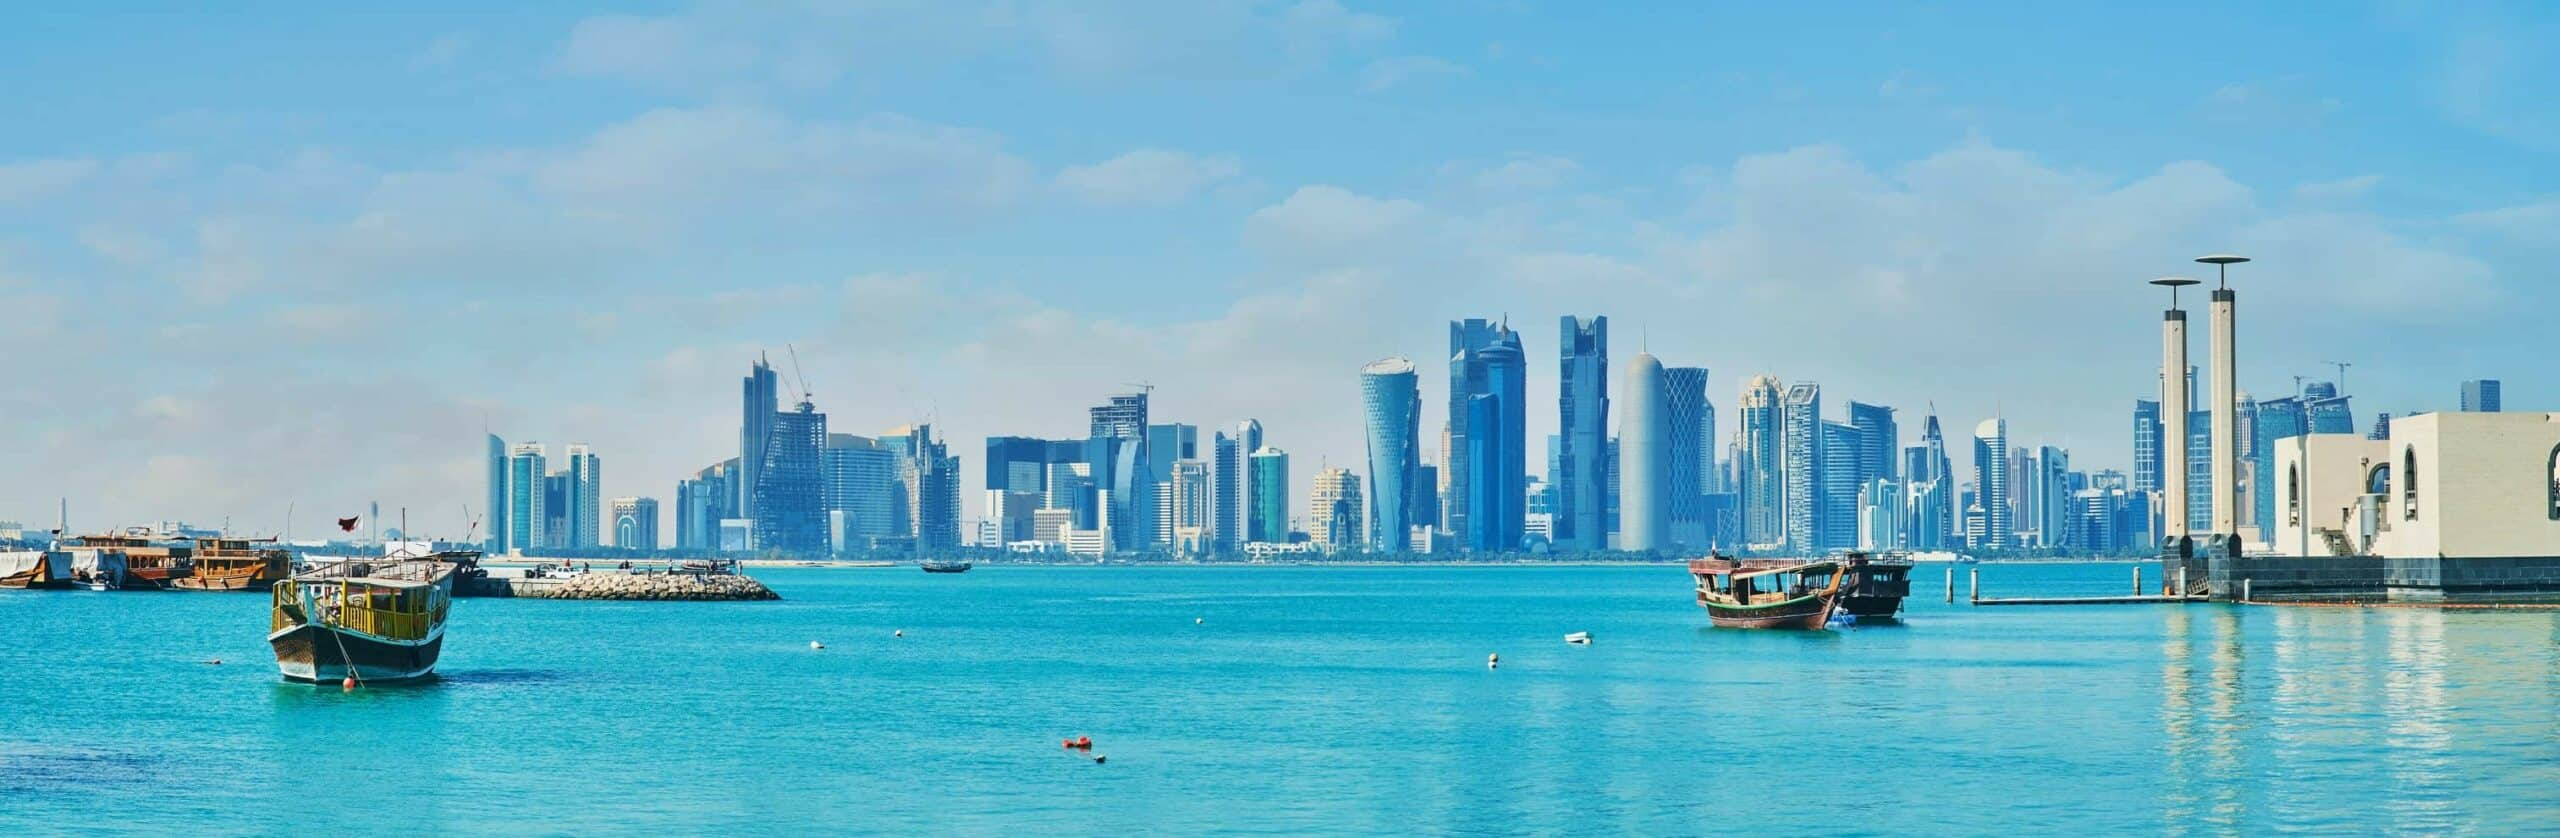 The seaside view on futuristic skyscrapers of West Bay from the Corniche promenade, Doha, Qatar.